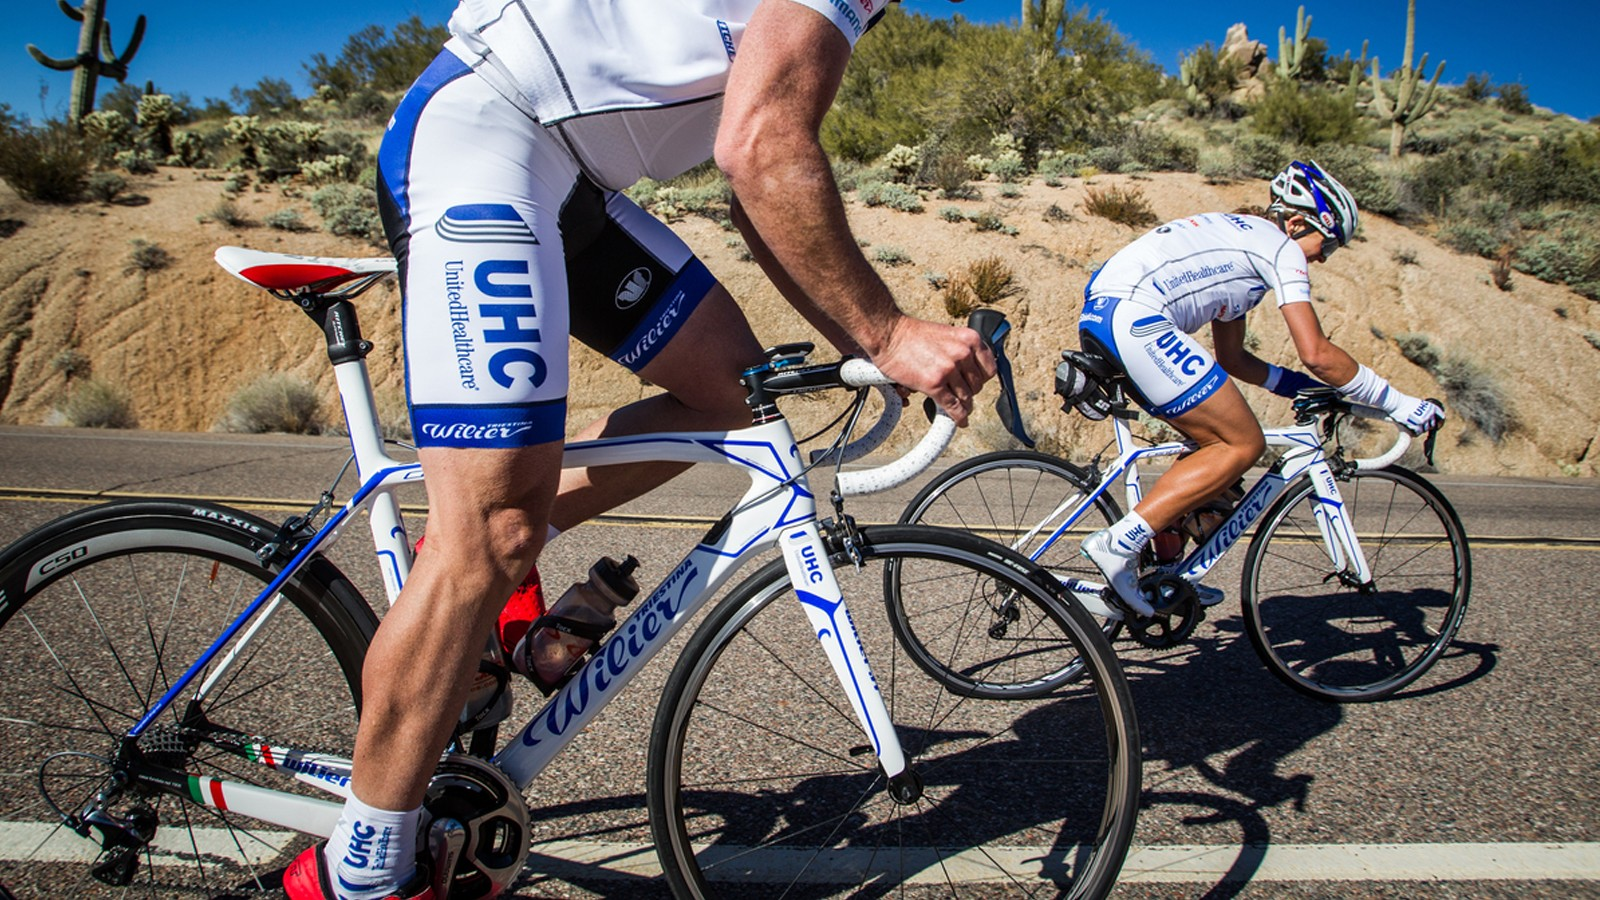 Ben Day is a professional cyclist with the UnitedHealthcare Pro Cycling team and coach to many professional athletes across the world